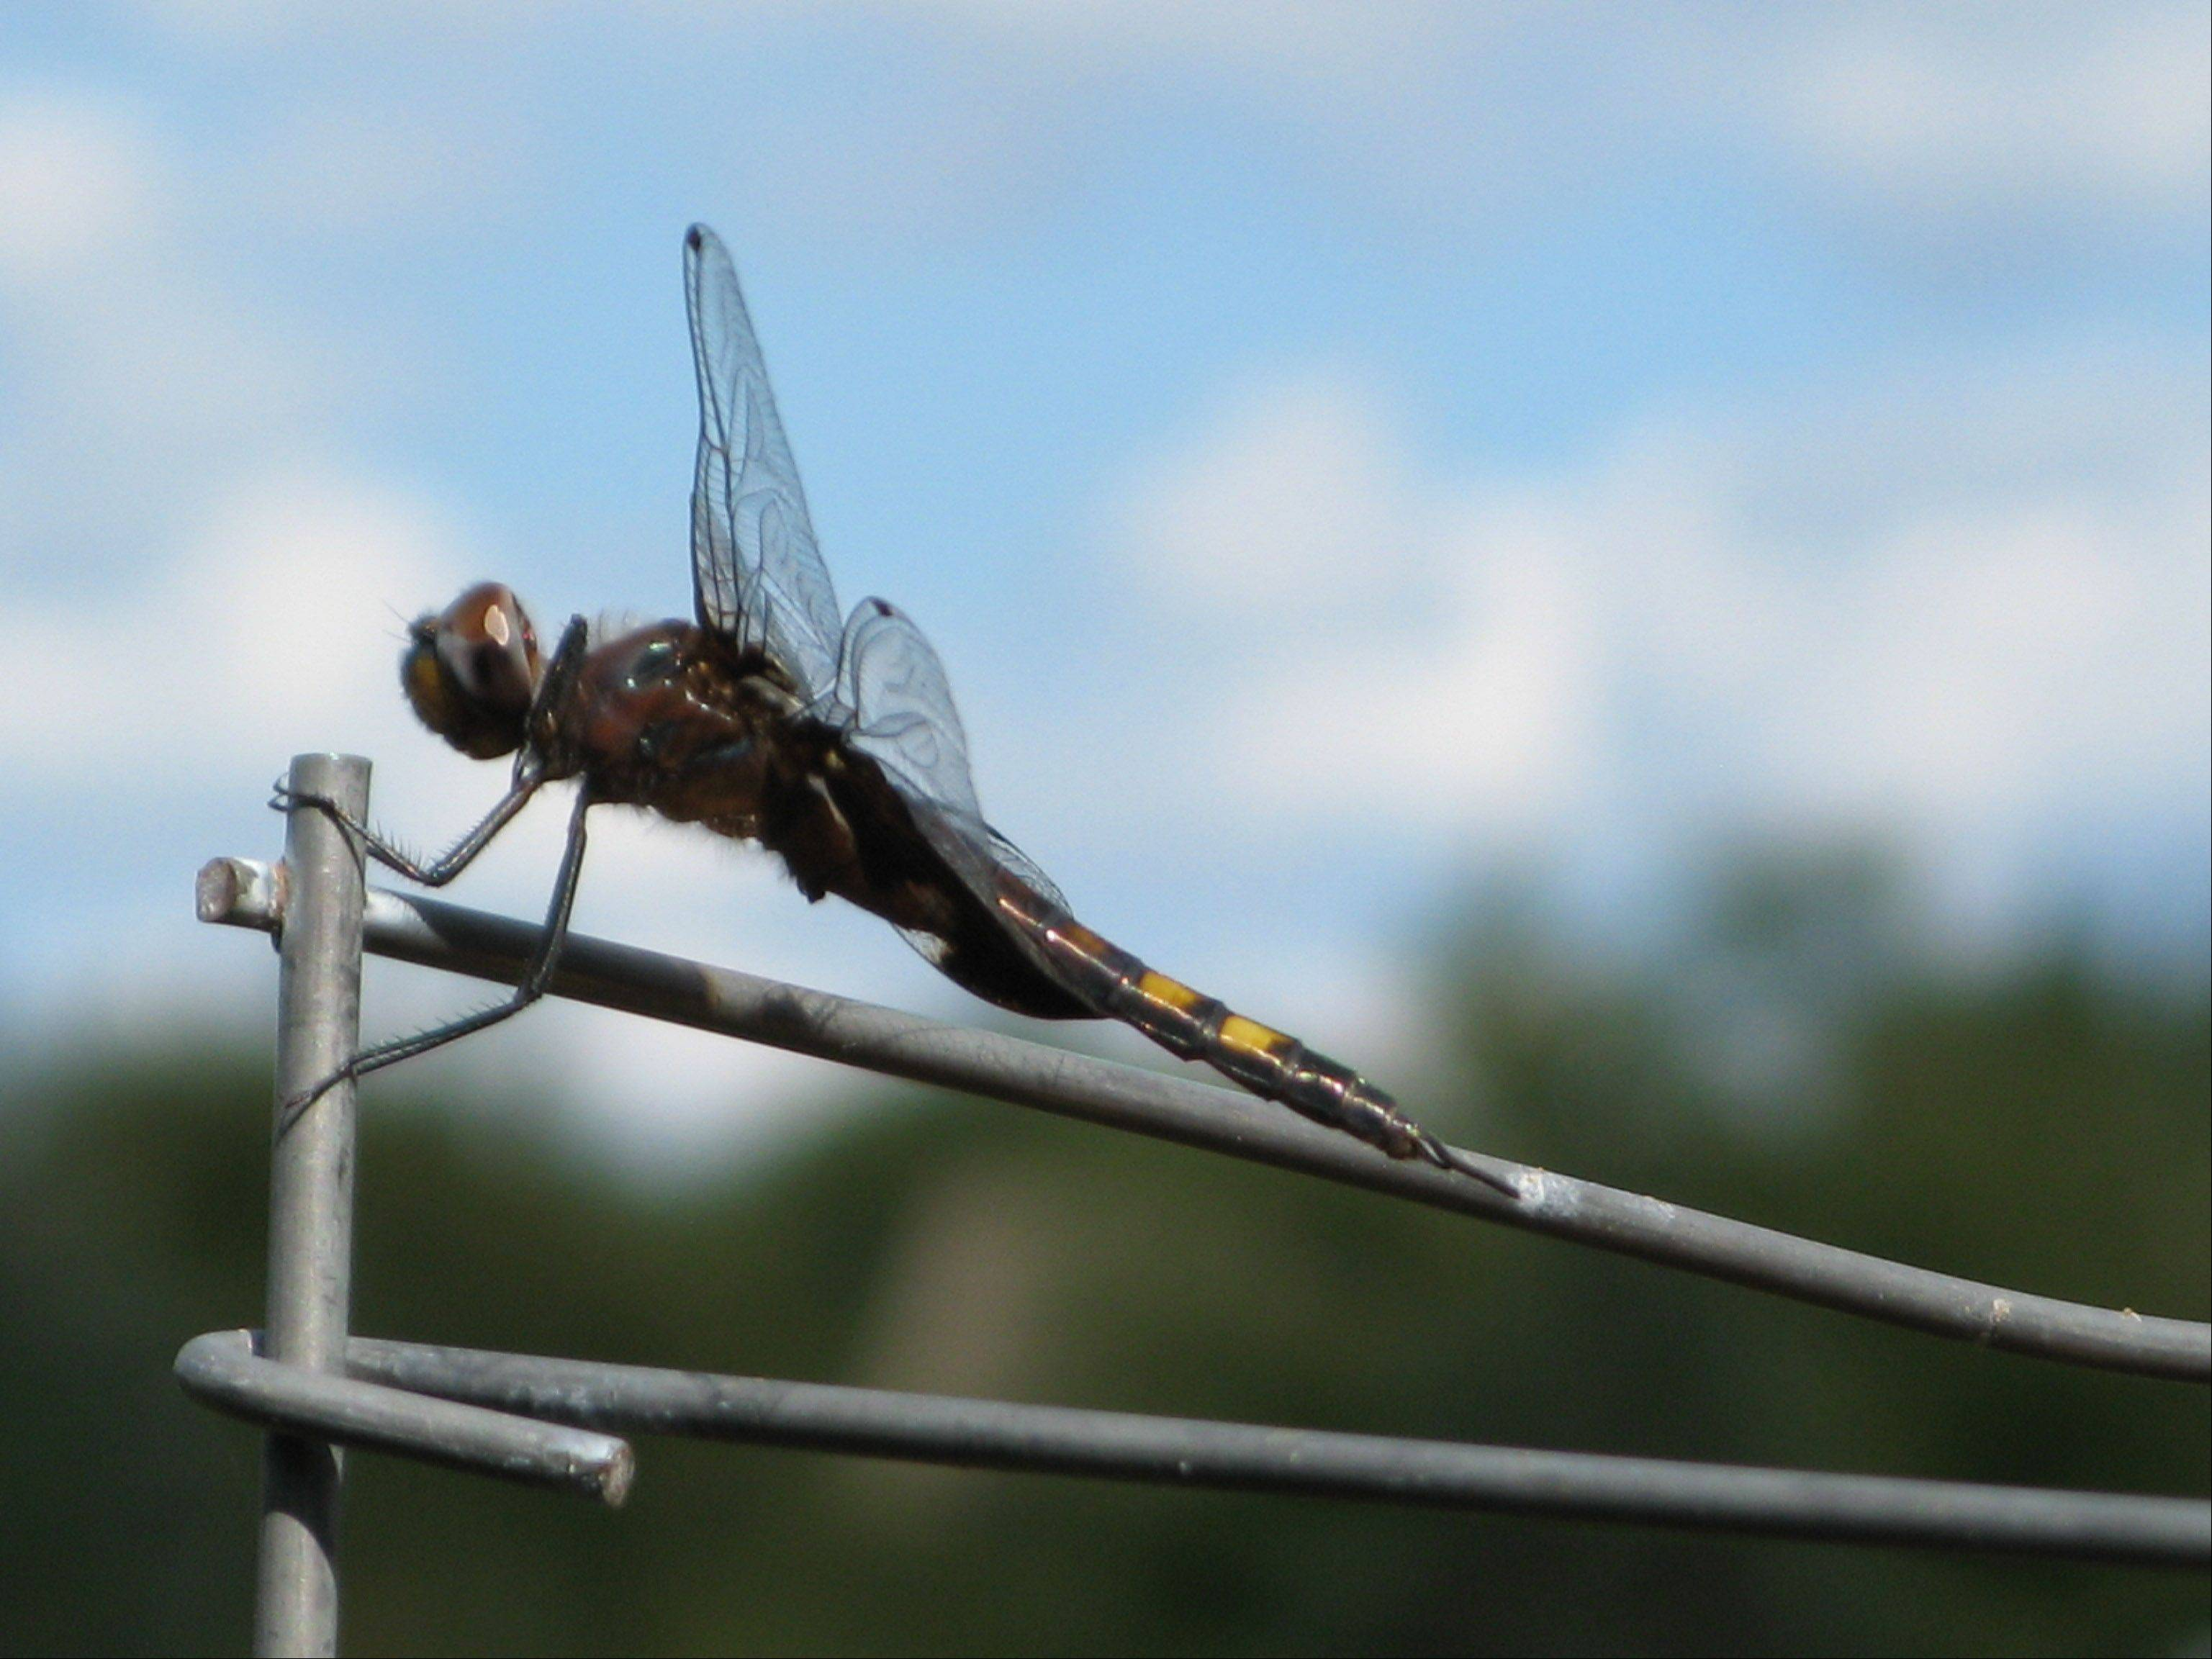 A dragonfly rests on a wire during the summer of 2010 in a Hawthorn Woods backyard.